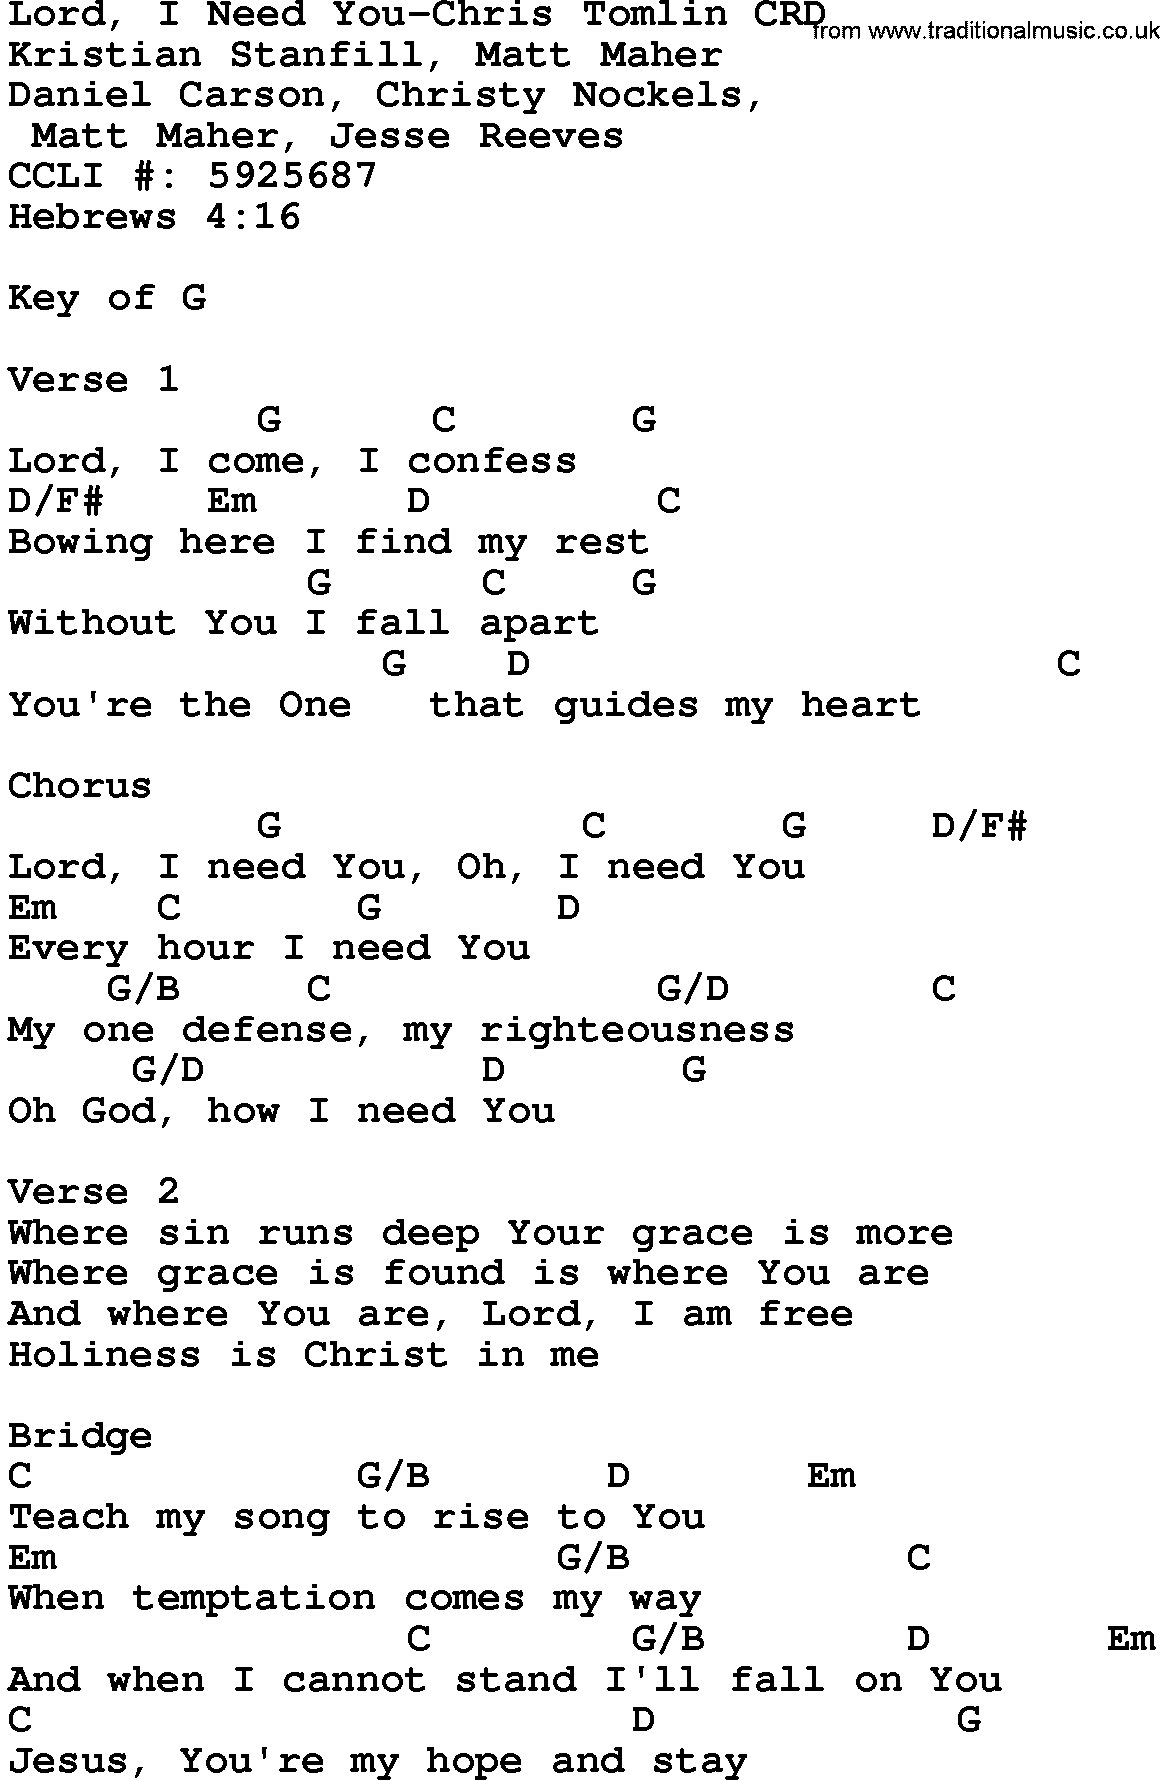 Christian Songs Lyrics and Chords - Home | Facebook